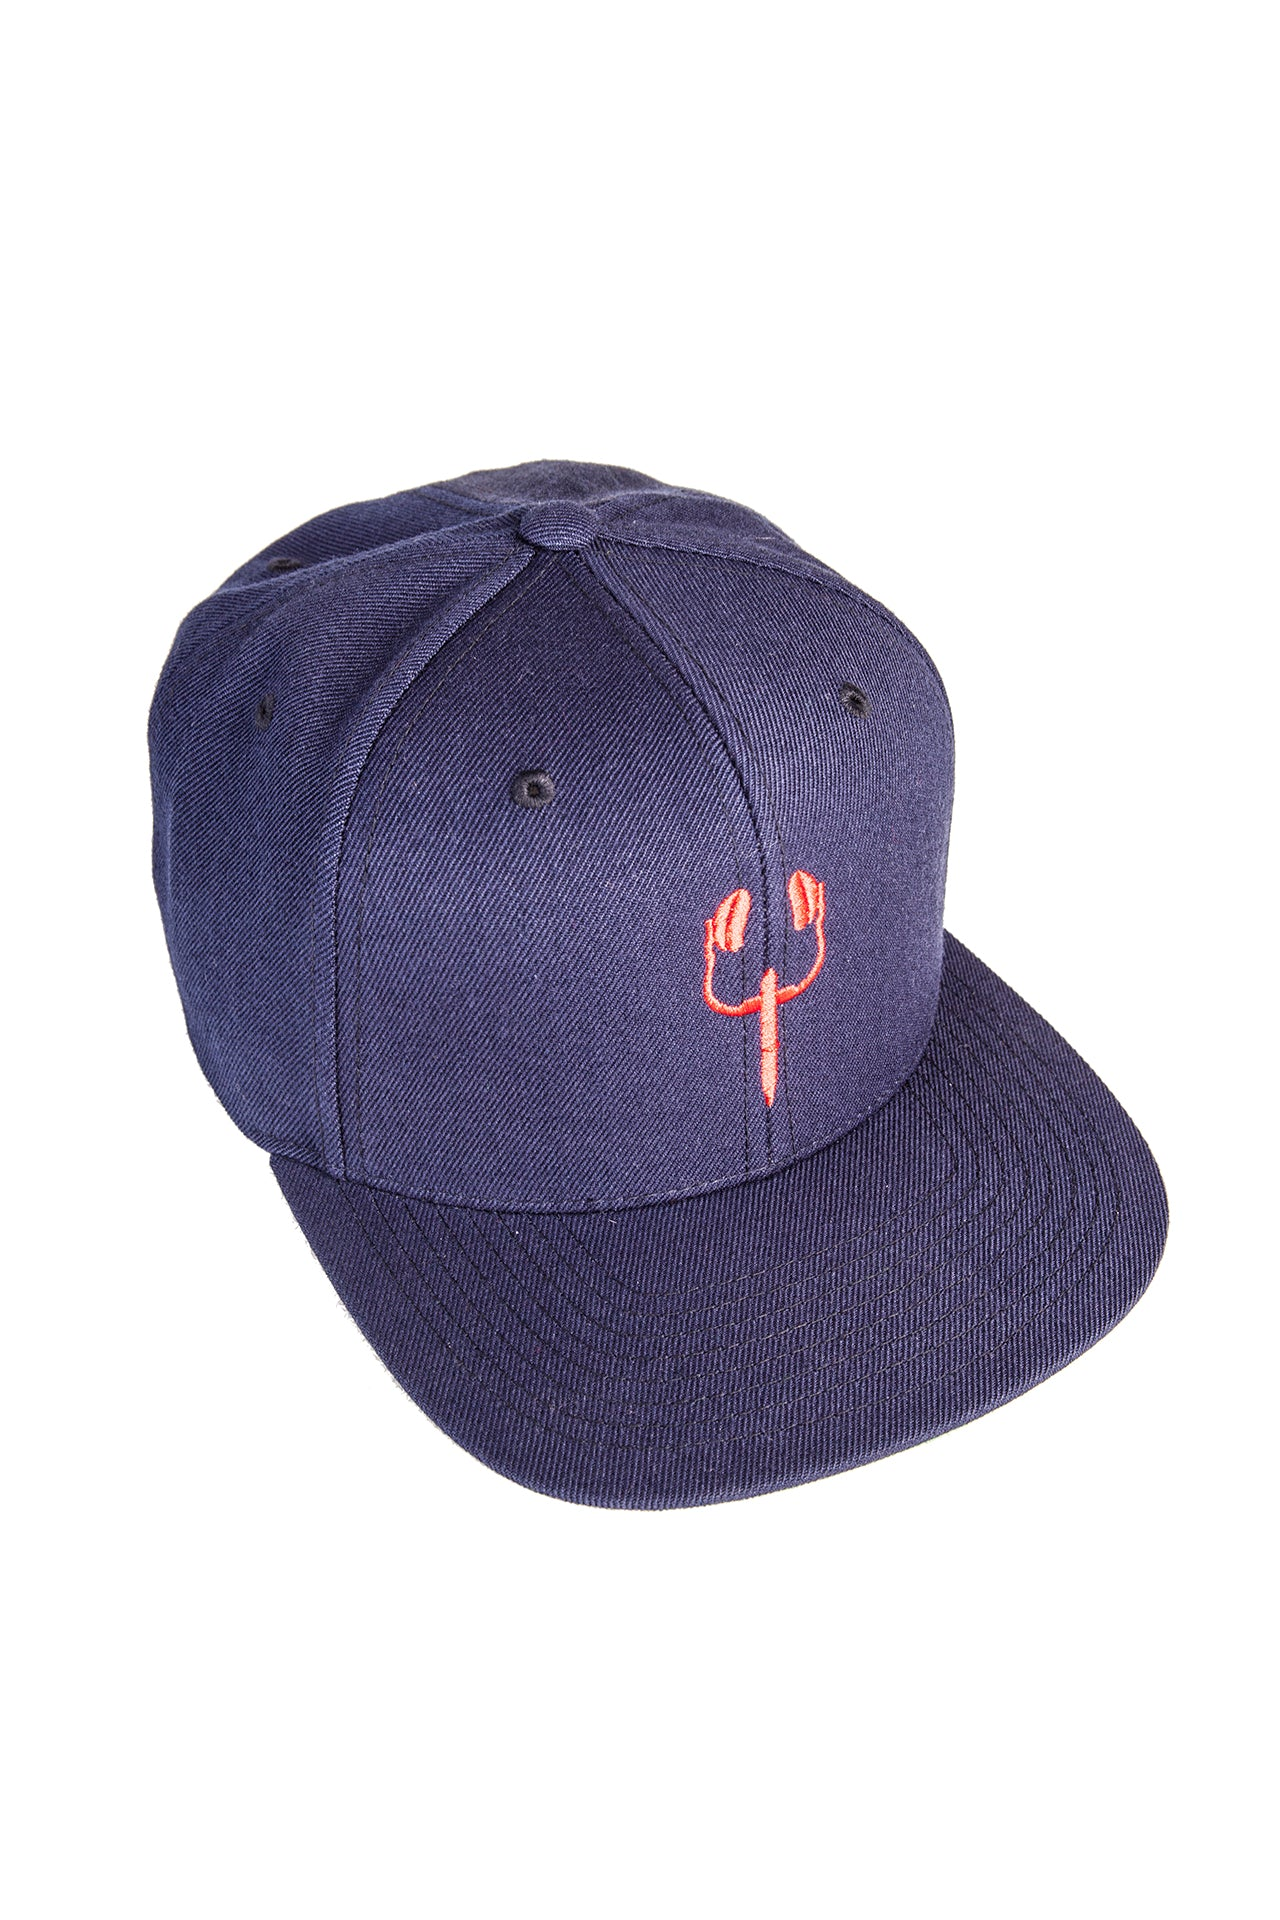 the provocateur idol snapback hat